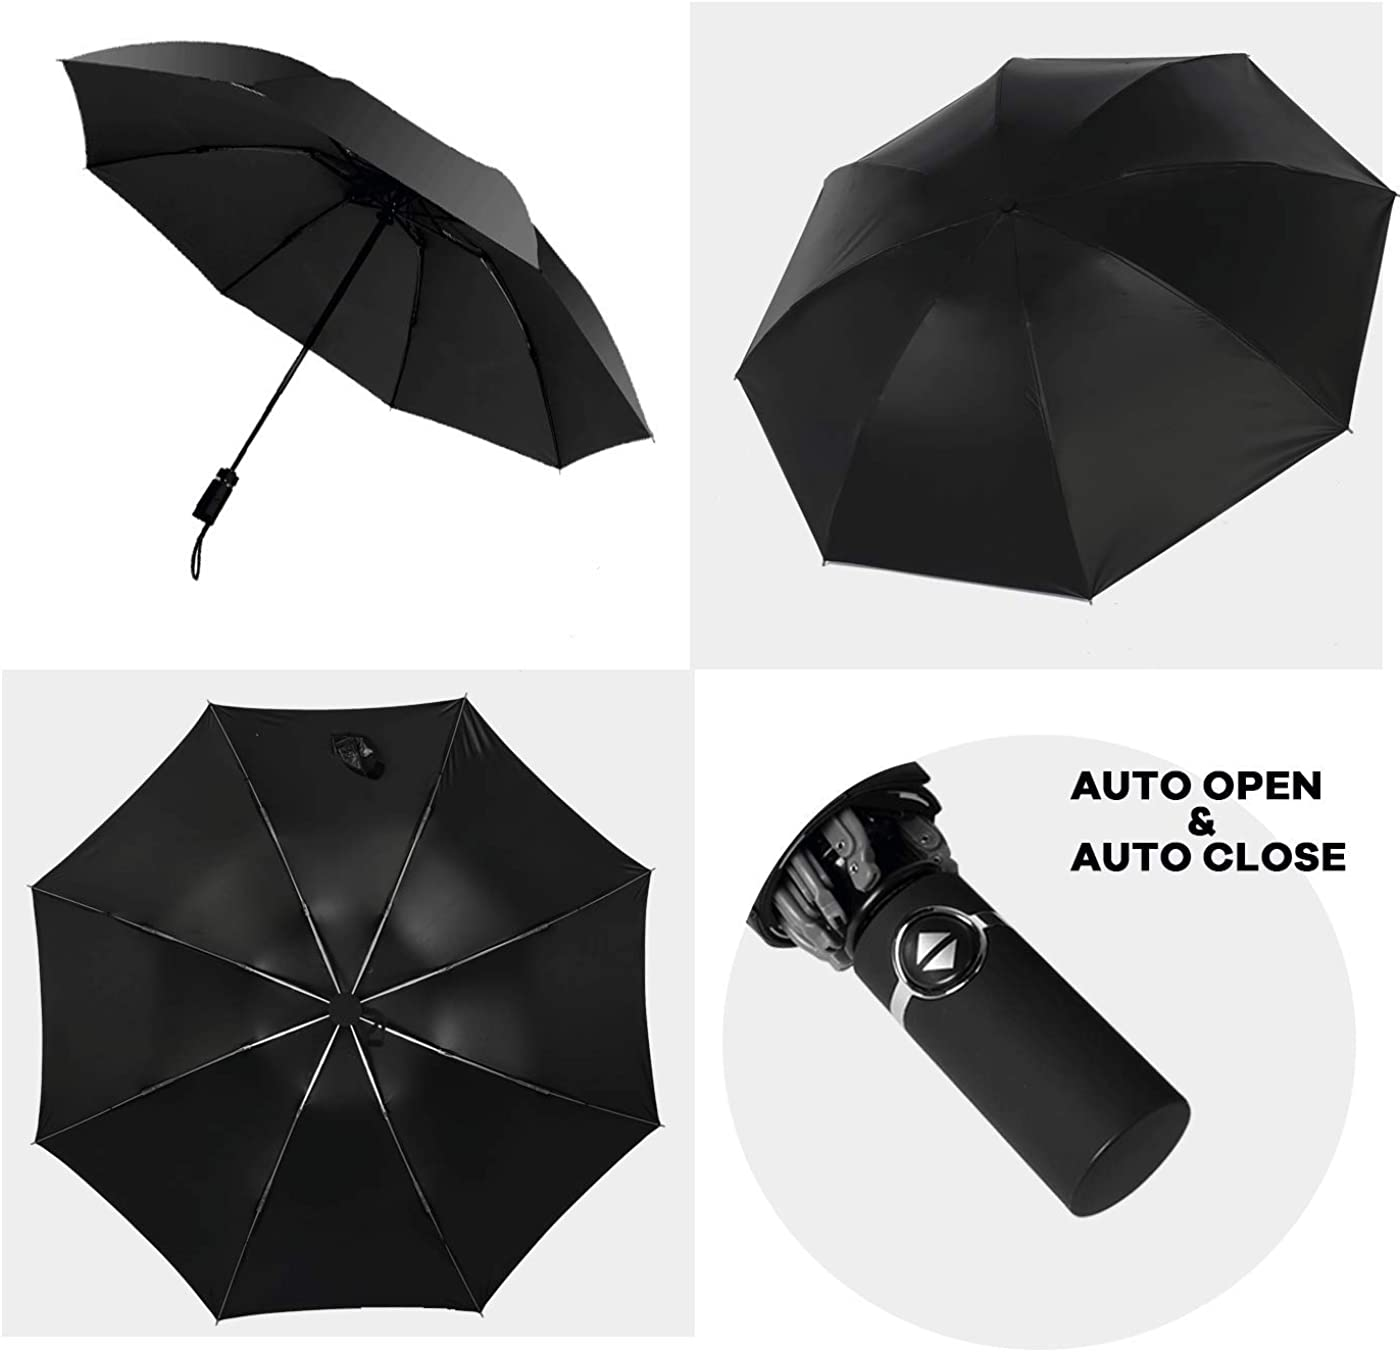 Double Layer Inverted Inverted Umbrella Is Light And Sturdy Close On Blue Eyes Dog Reverse Umbrella And Windproof Umbrella Edge Night Reflection